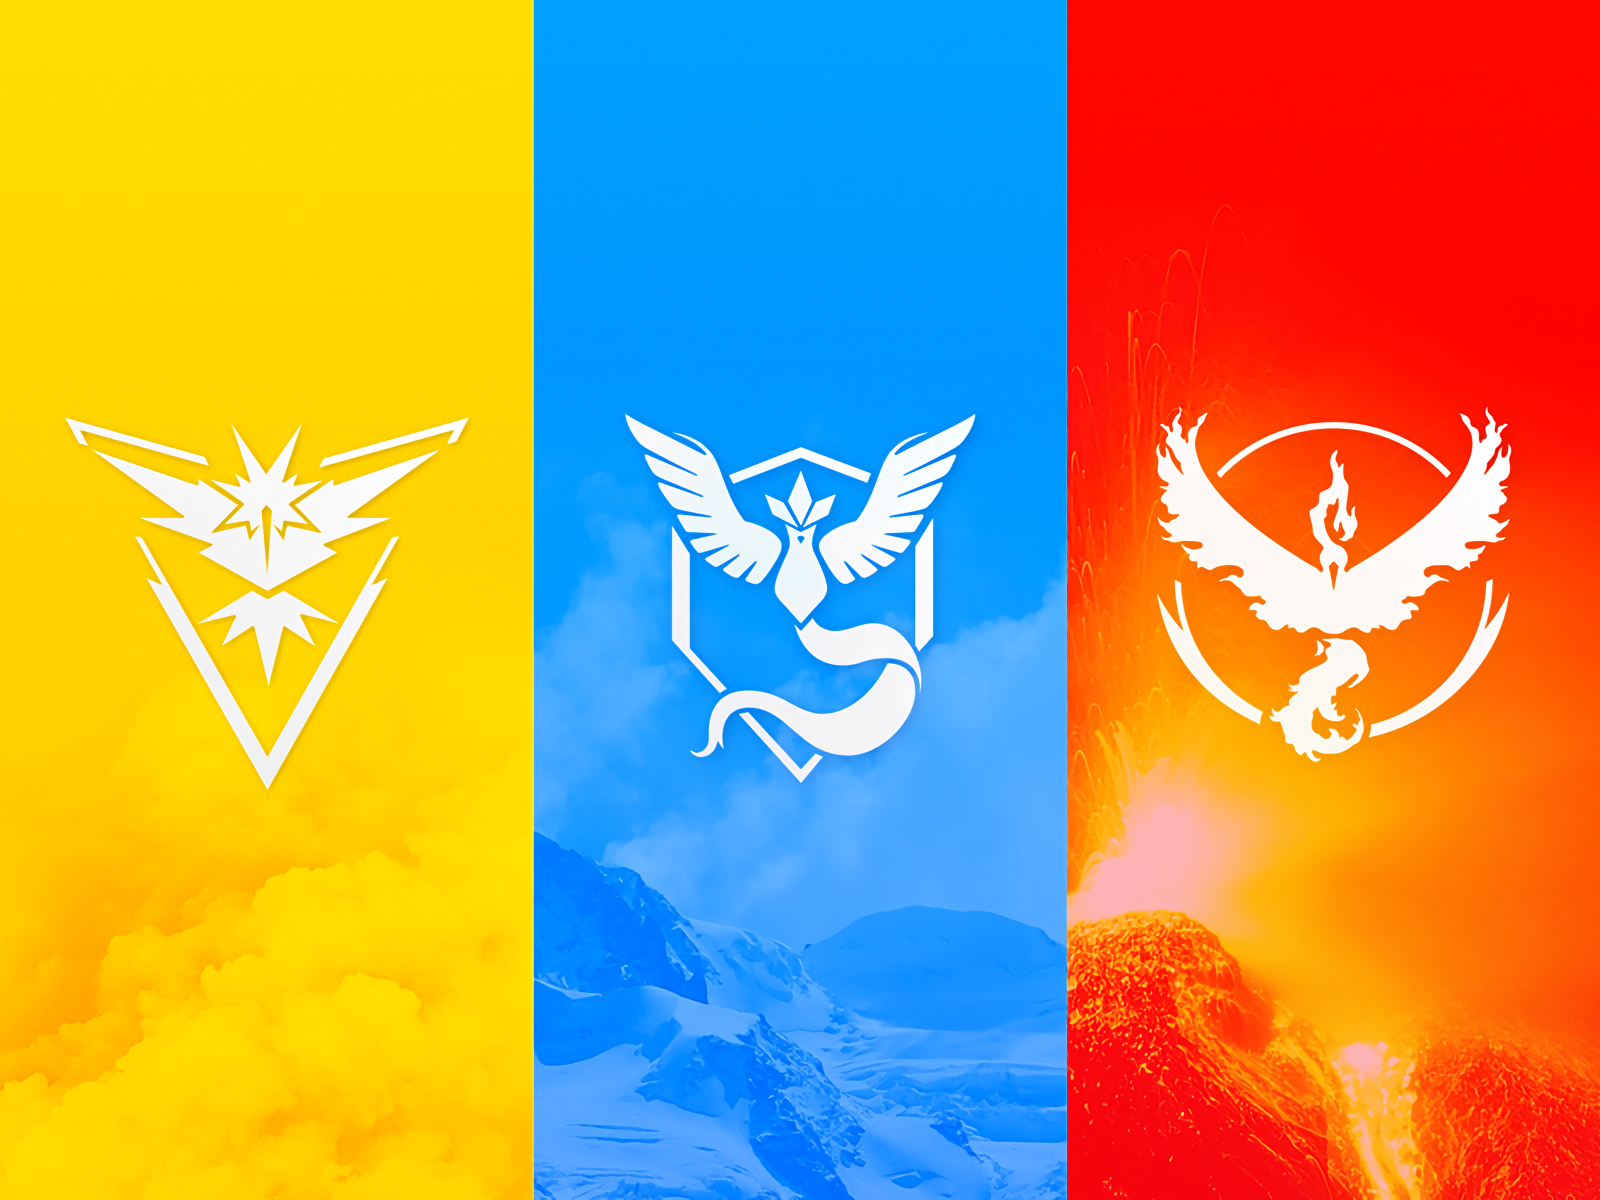 Gry Wideo - Pokémon GO  Pokemon Go Team Instinct Team Valor Team Mystic Tapeta